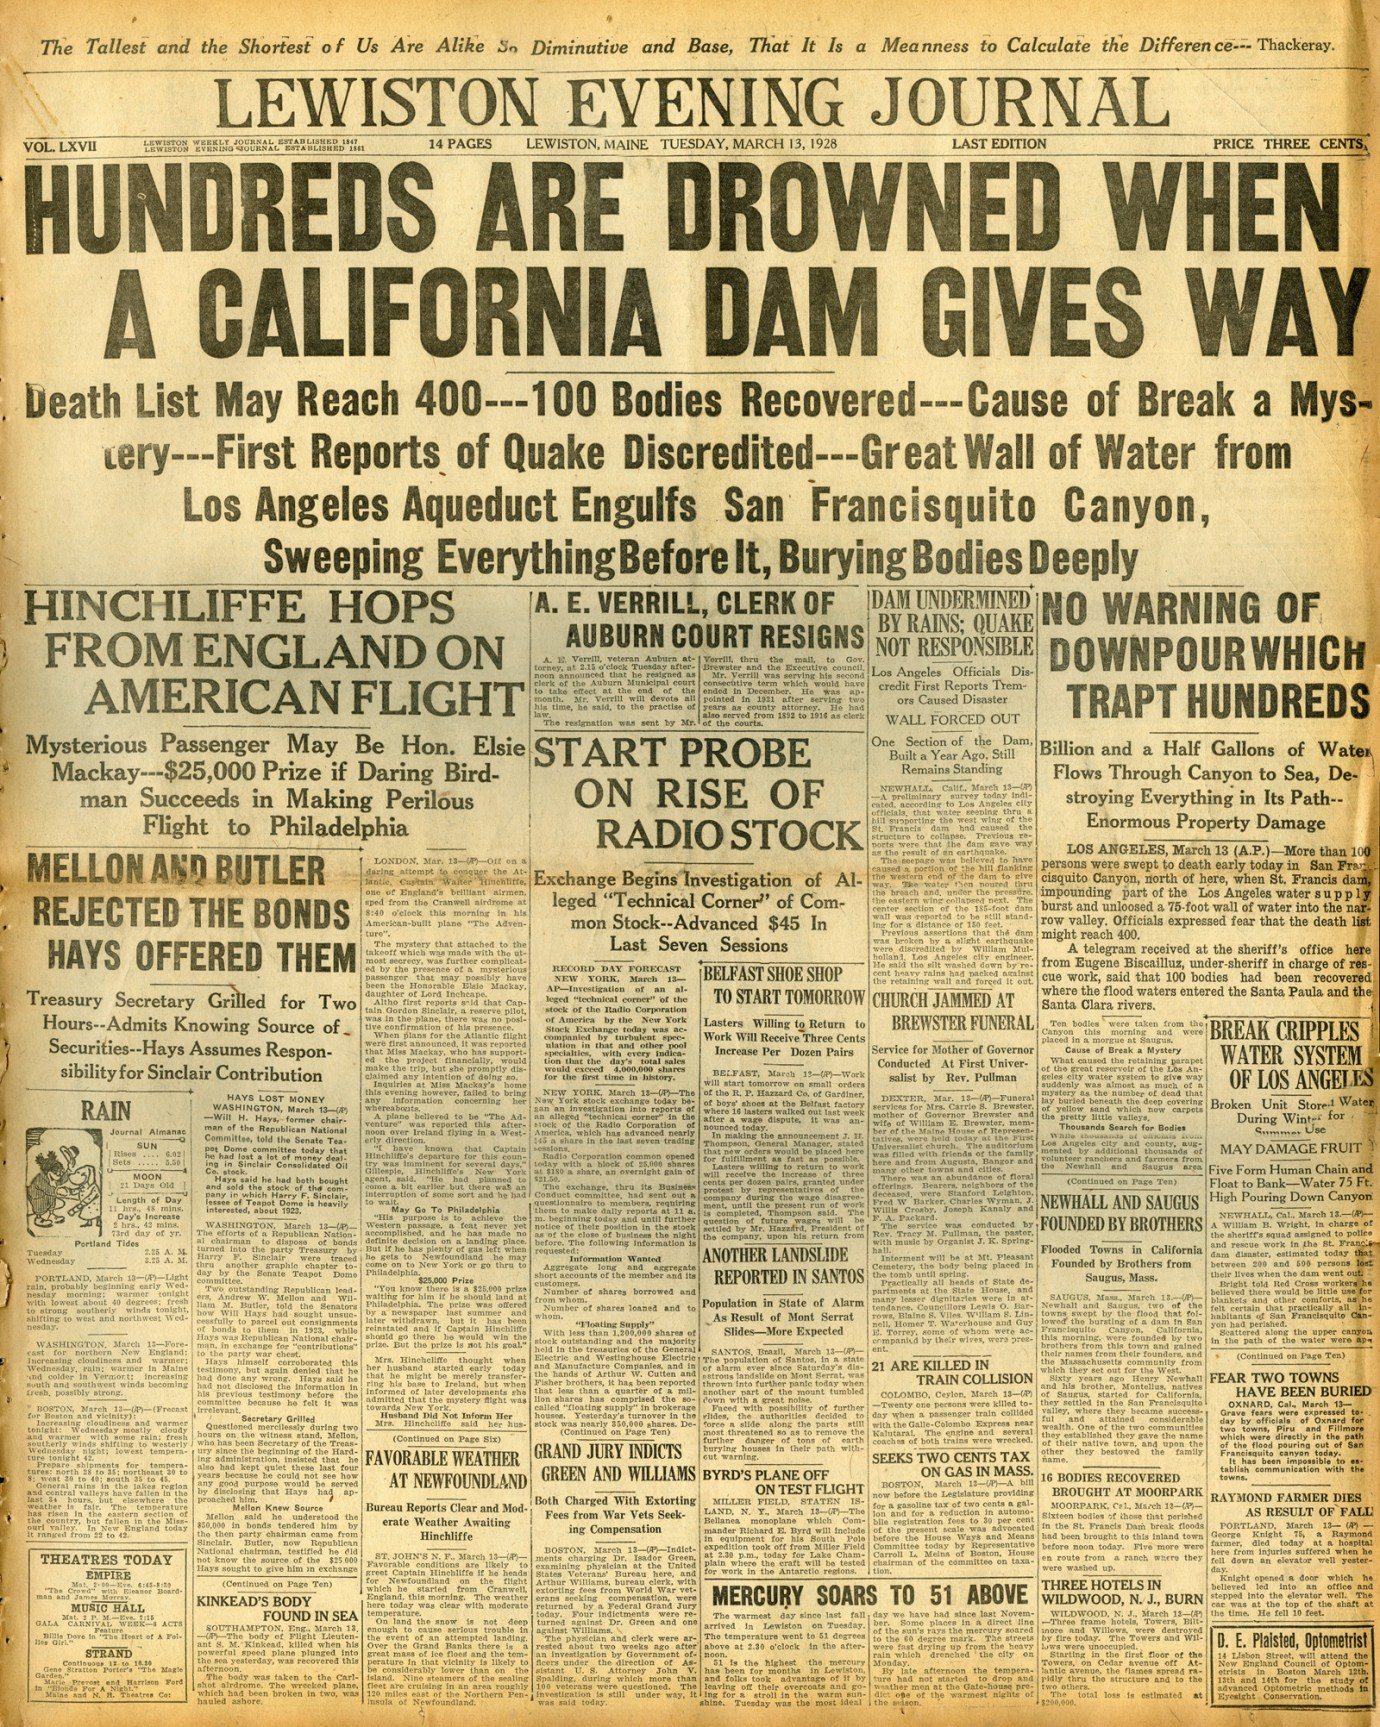 Newspapers of the St. Francis Dam Disaster.  LEWISTON EVENING JOURNAL(NEWSPAPER),  TUESDAY, MARCH 13, 1928